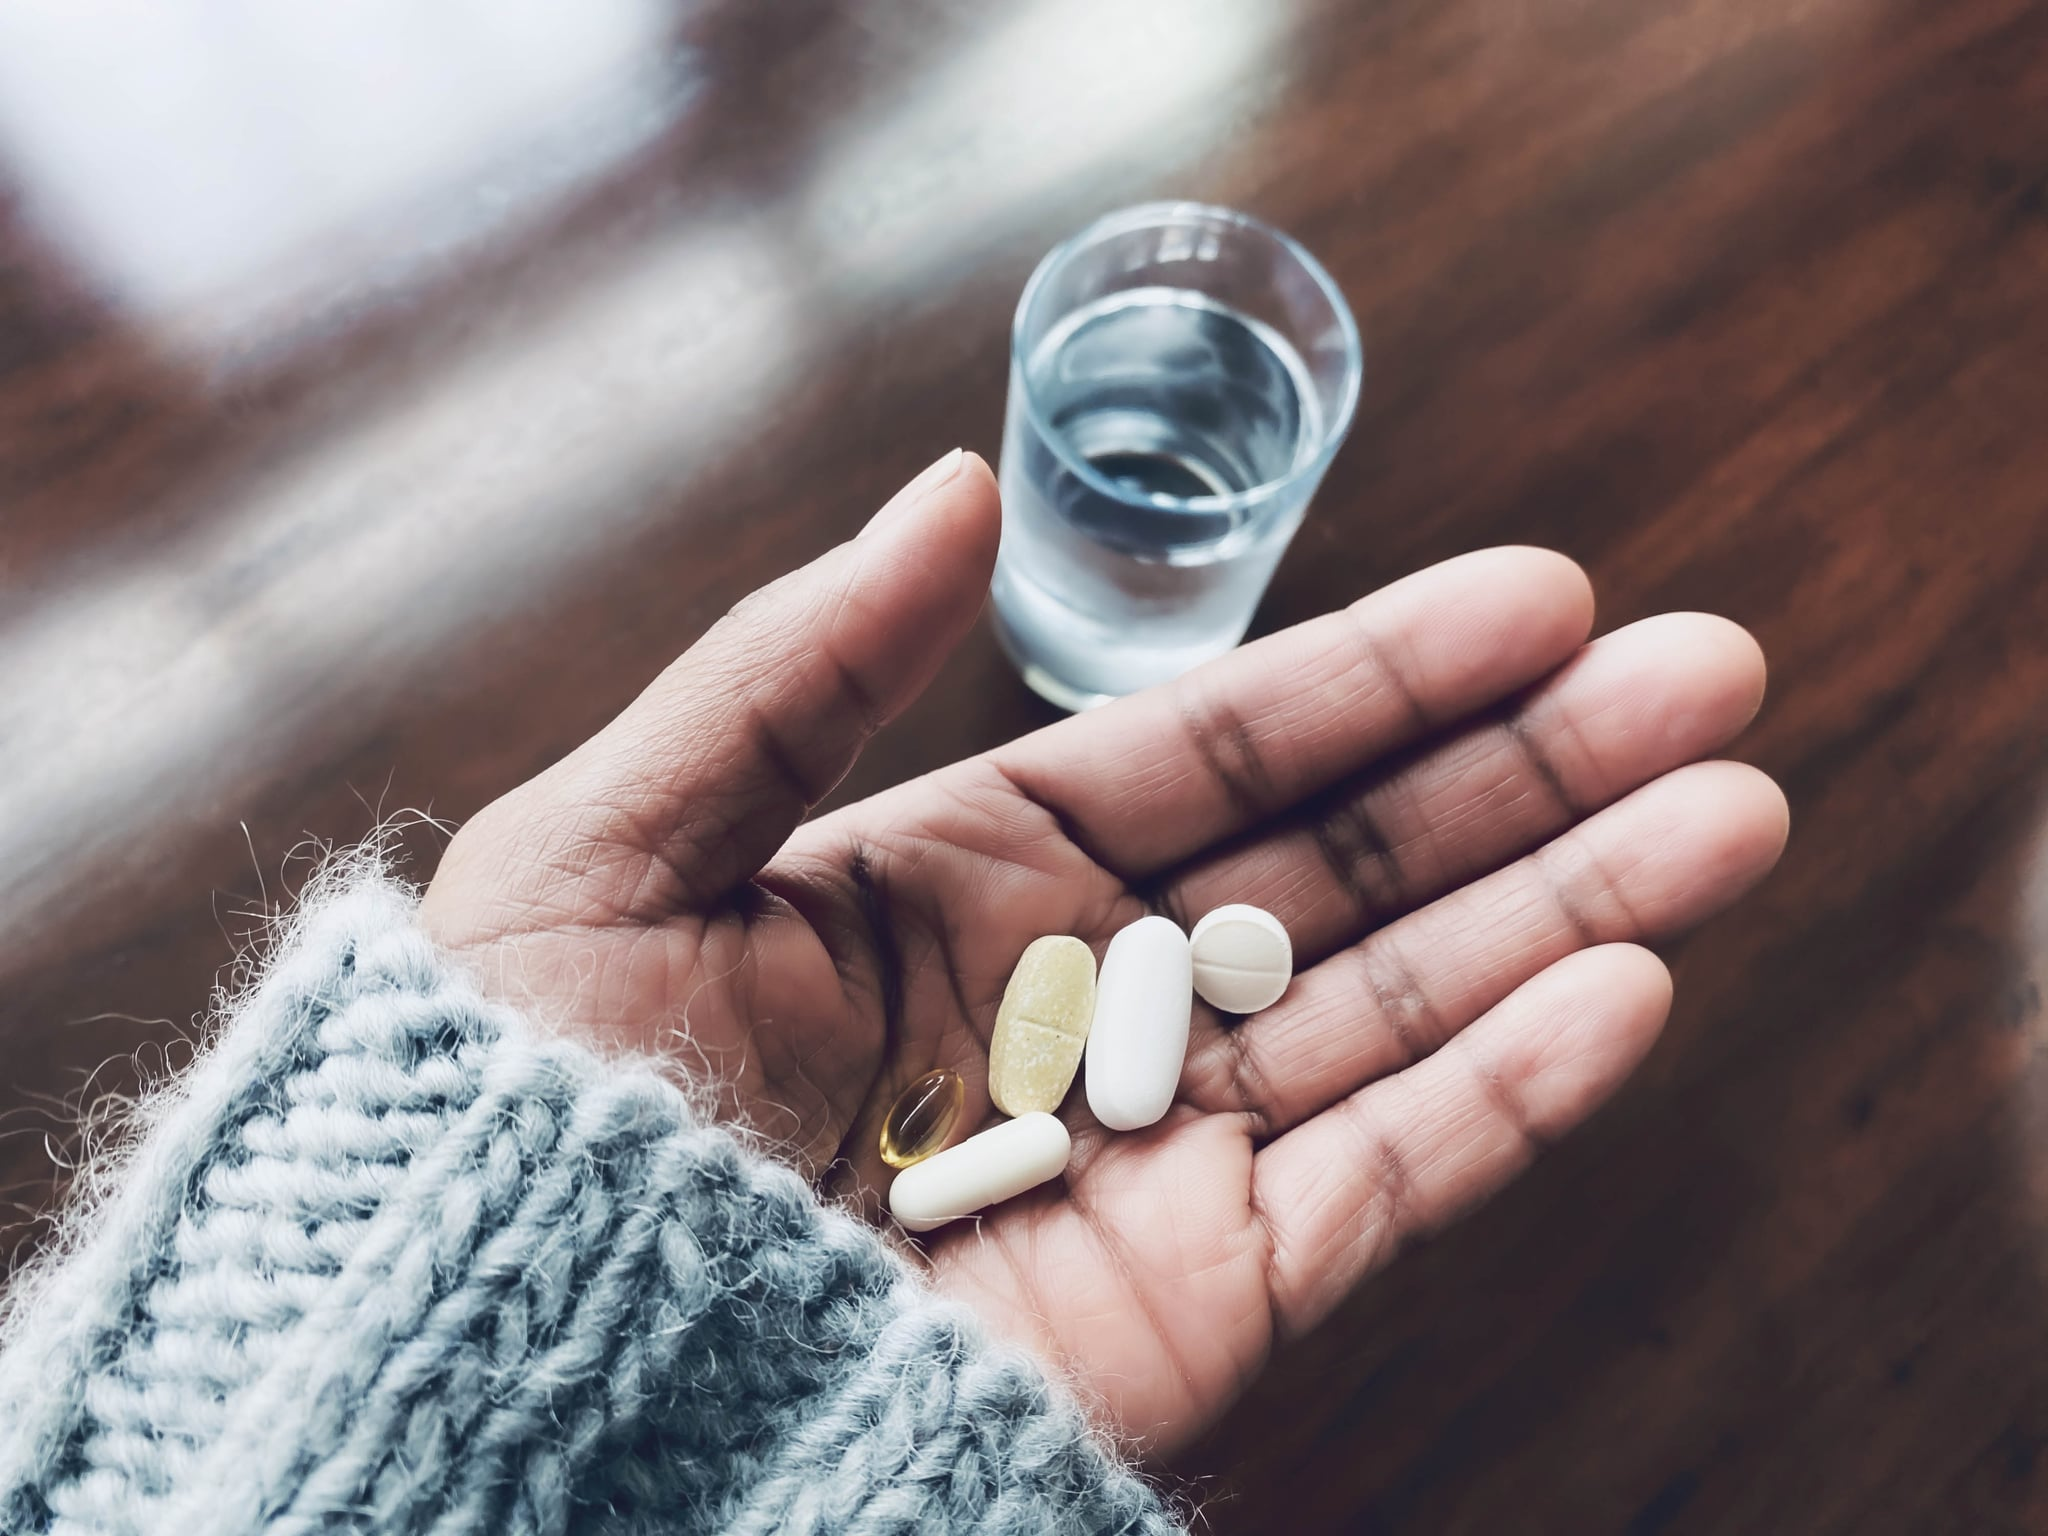 Close-up of woman's hand holding Vitamin C, Vitamin D, a probiotic and other nutritional supplements